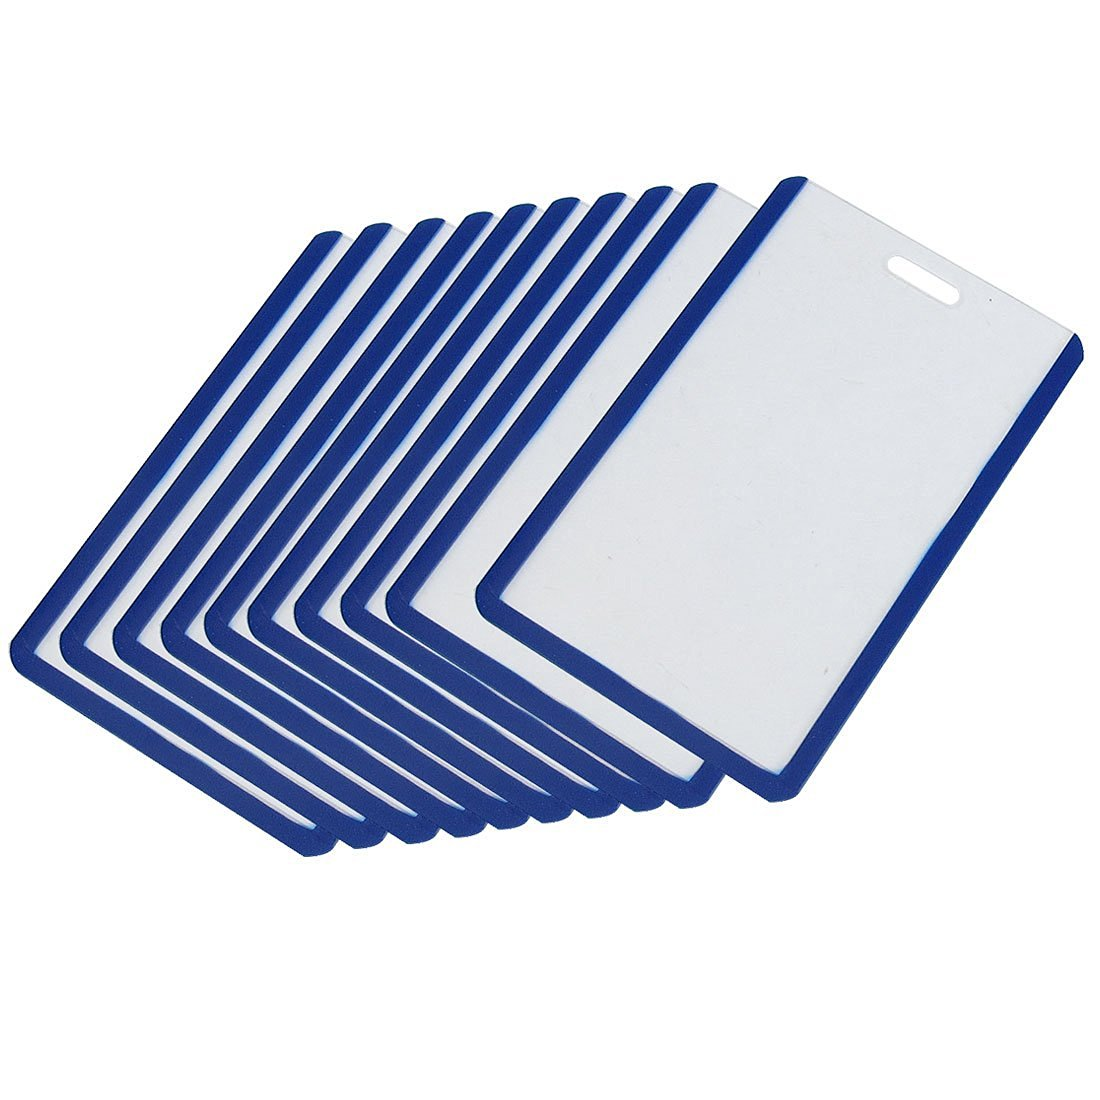 Uxcell Plastic Vertical Business ID Badge Card Holder, 10-Piece, Blue Clear